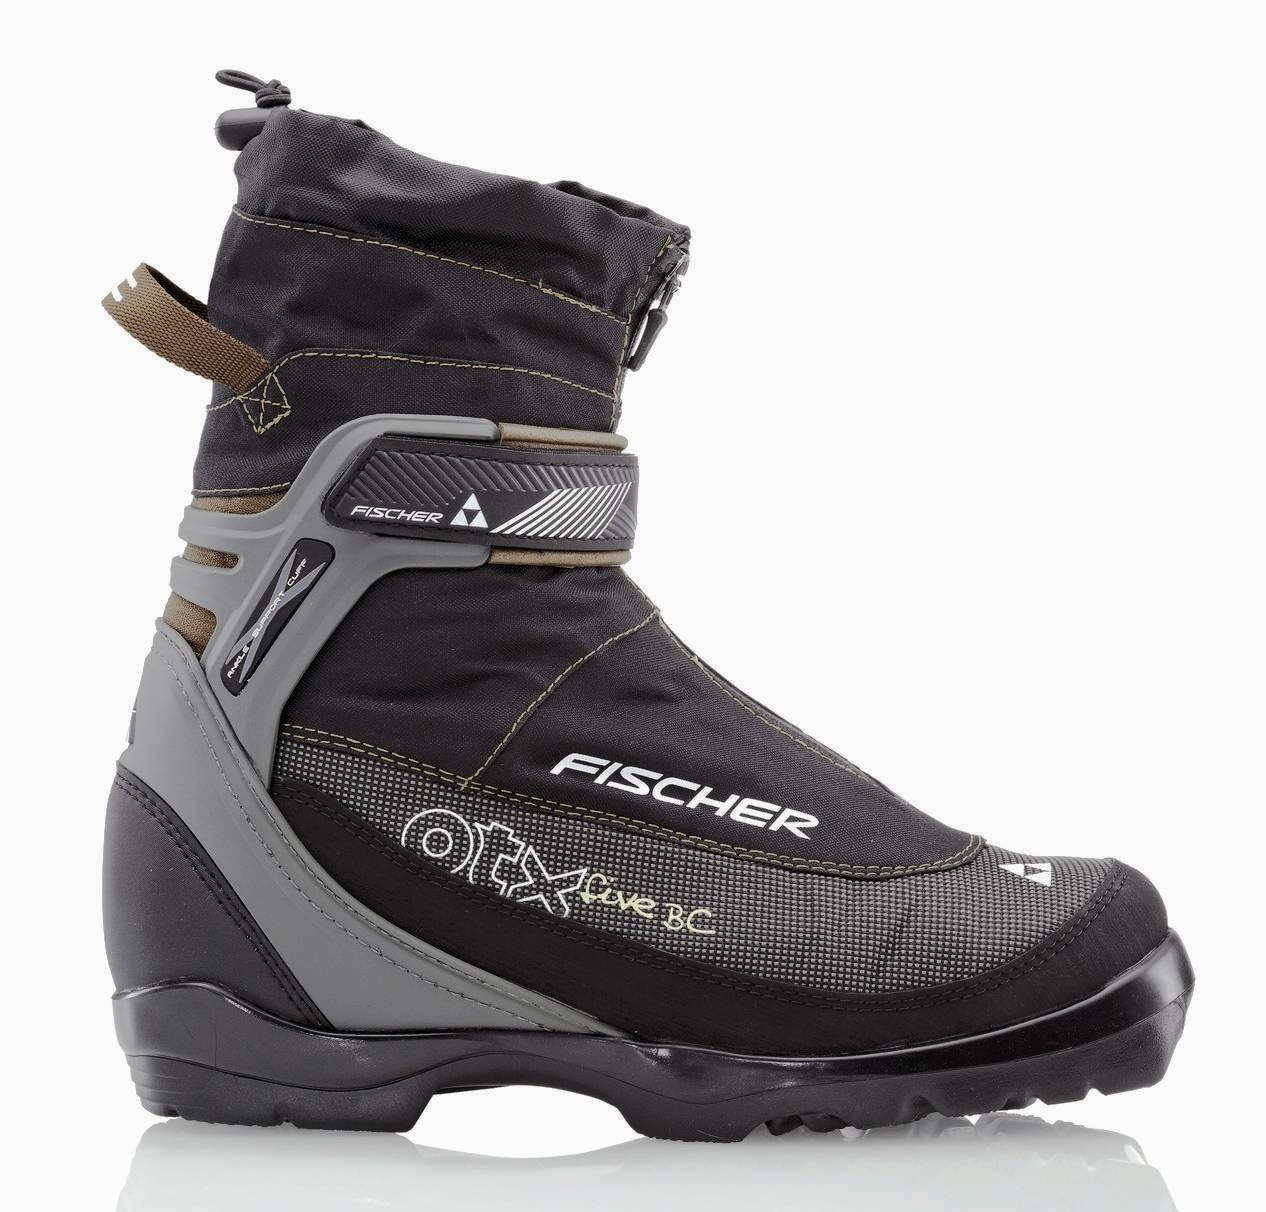 Buty do nart backcountry Fischer offtrack BC5